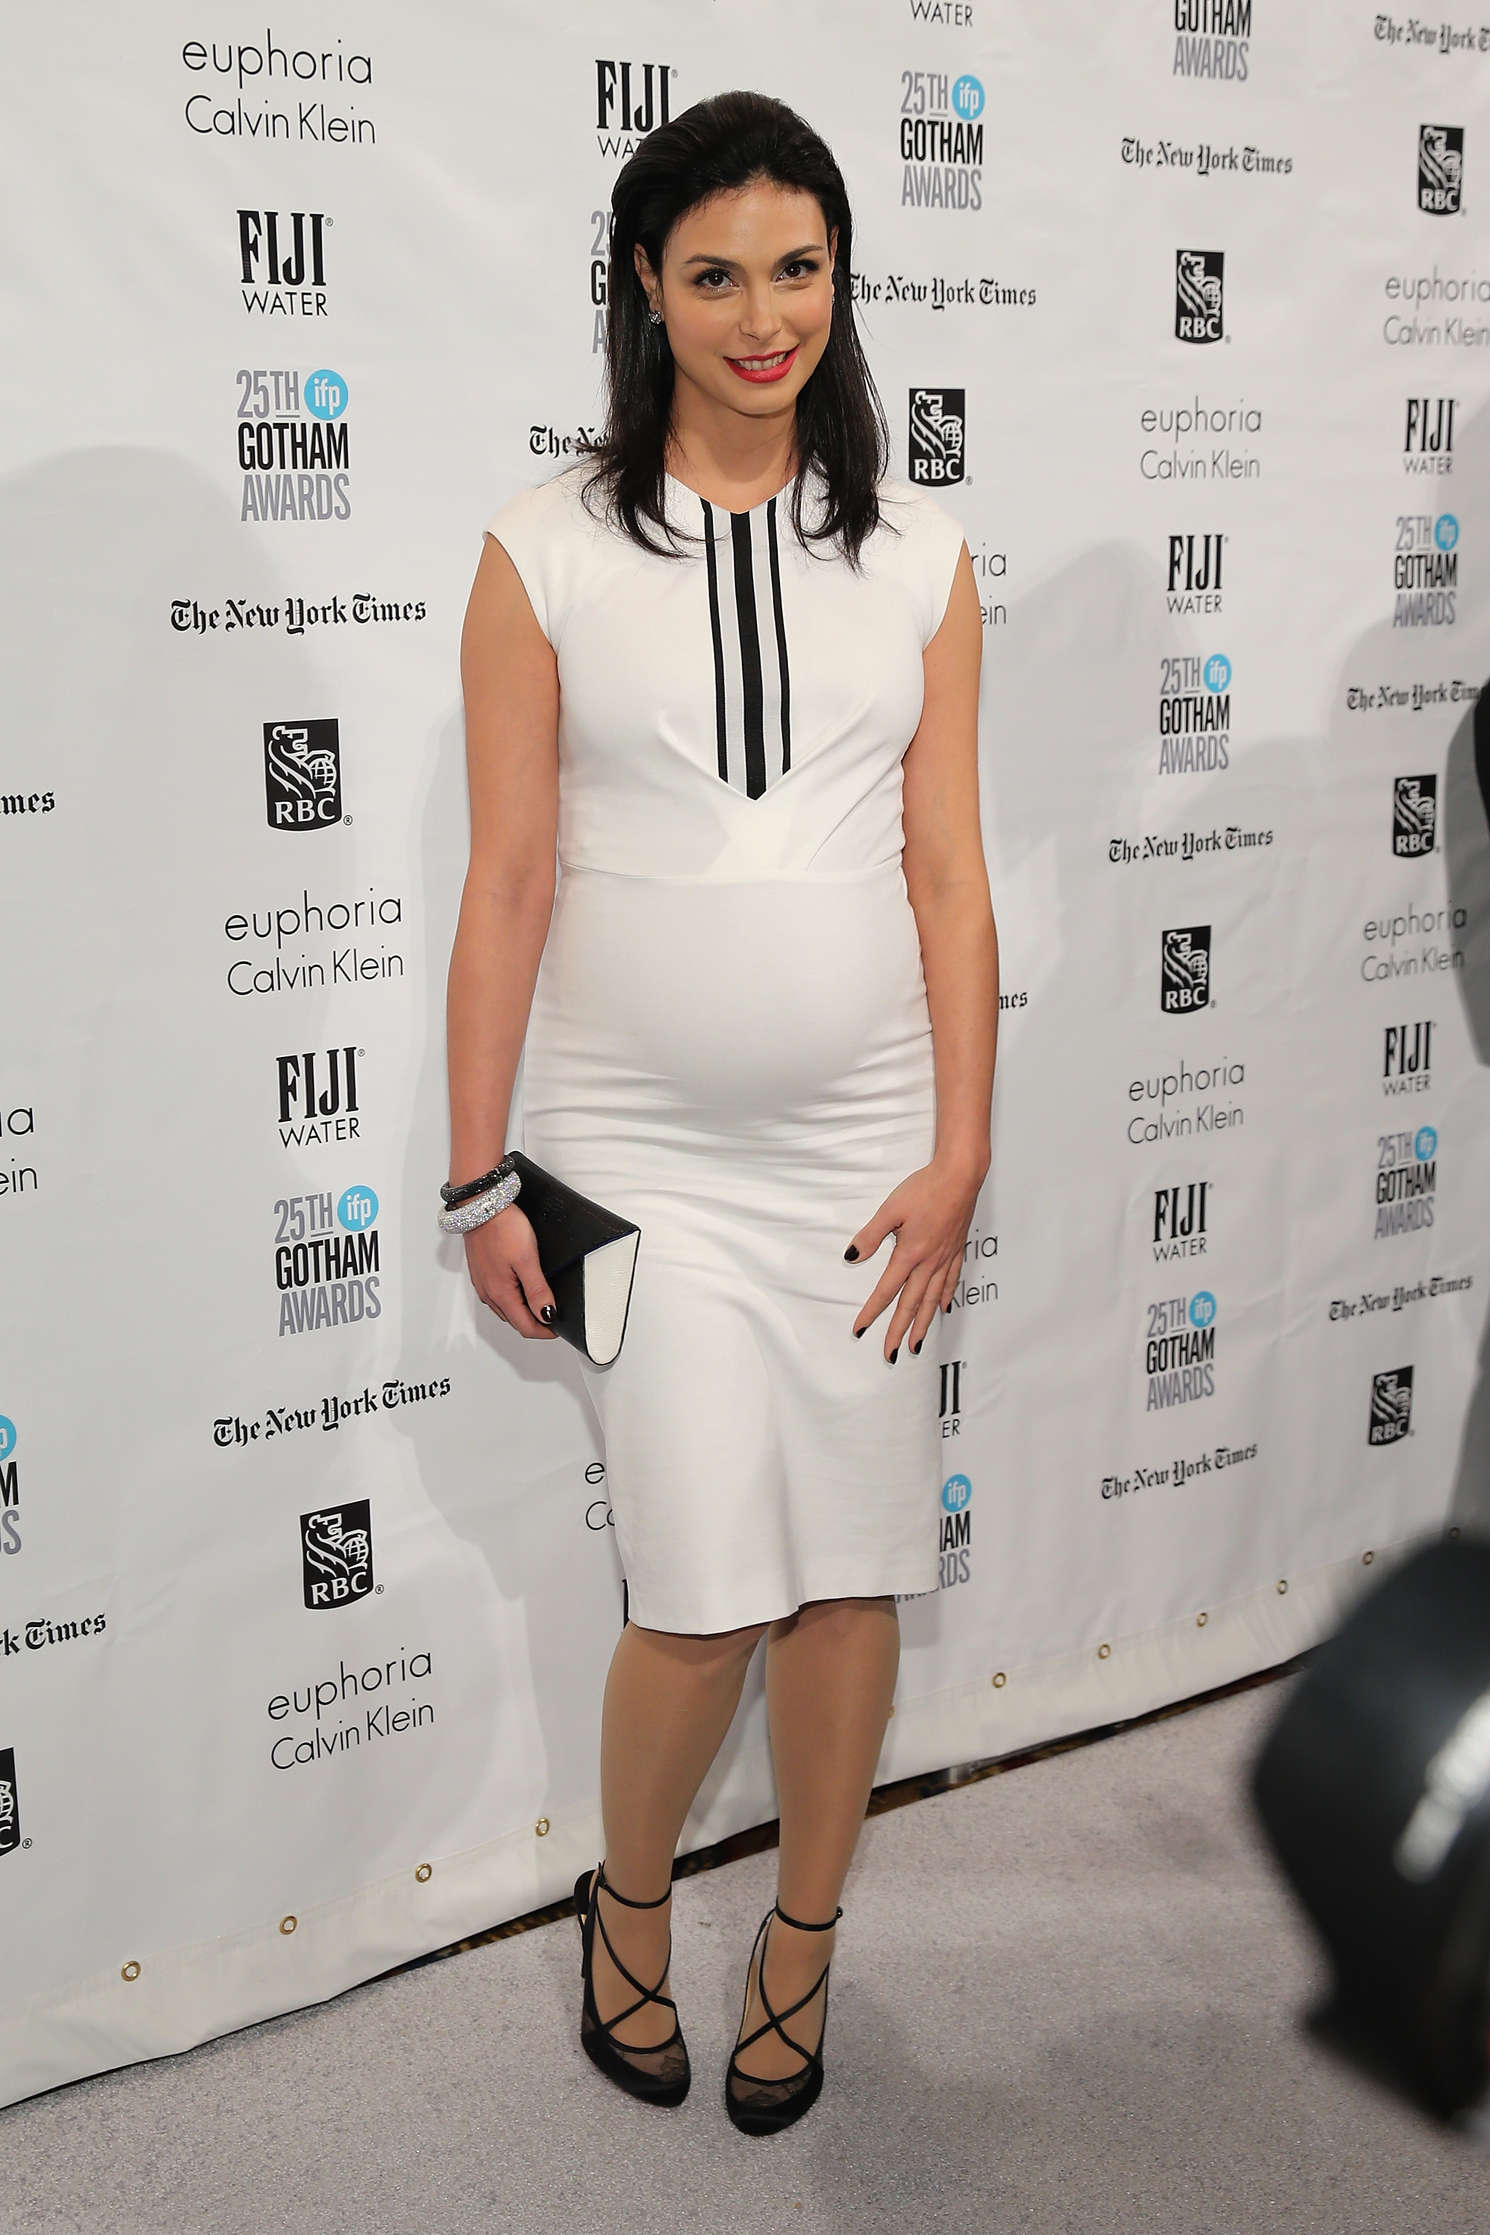 Morena Baccarin - The 25th IFP Gotham Independent Film Awards in NY